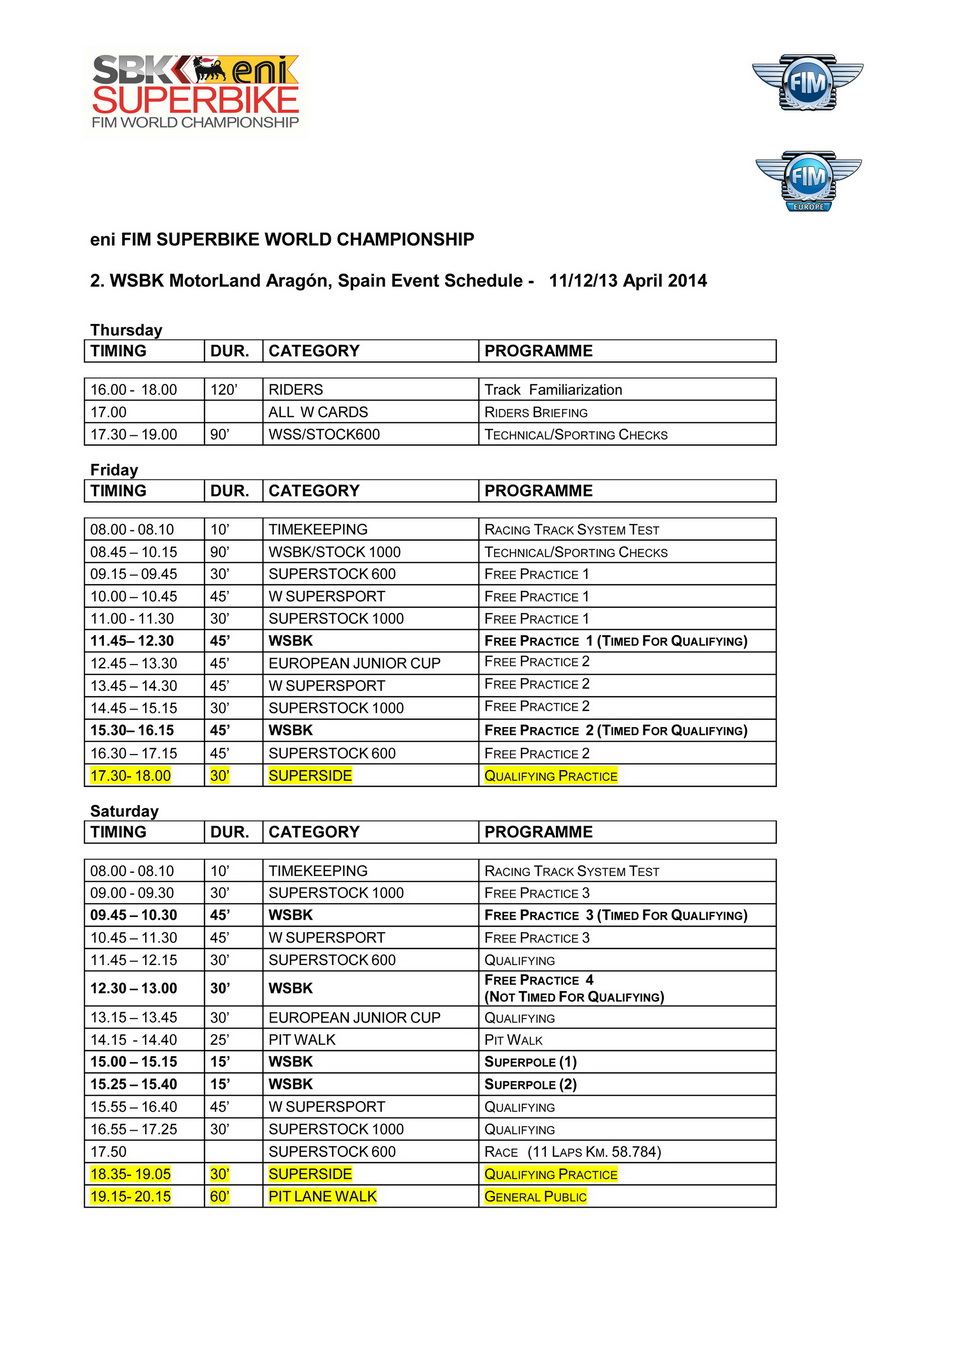 WSBK_MotorLand_Aragon_Spain_Event_Schedule_Pagina_1_resize_resize